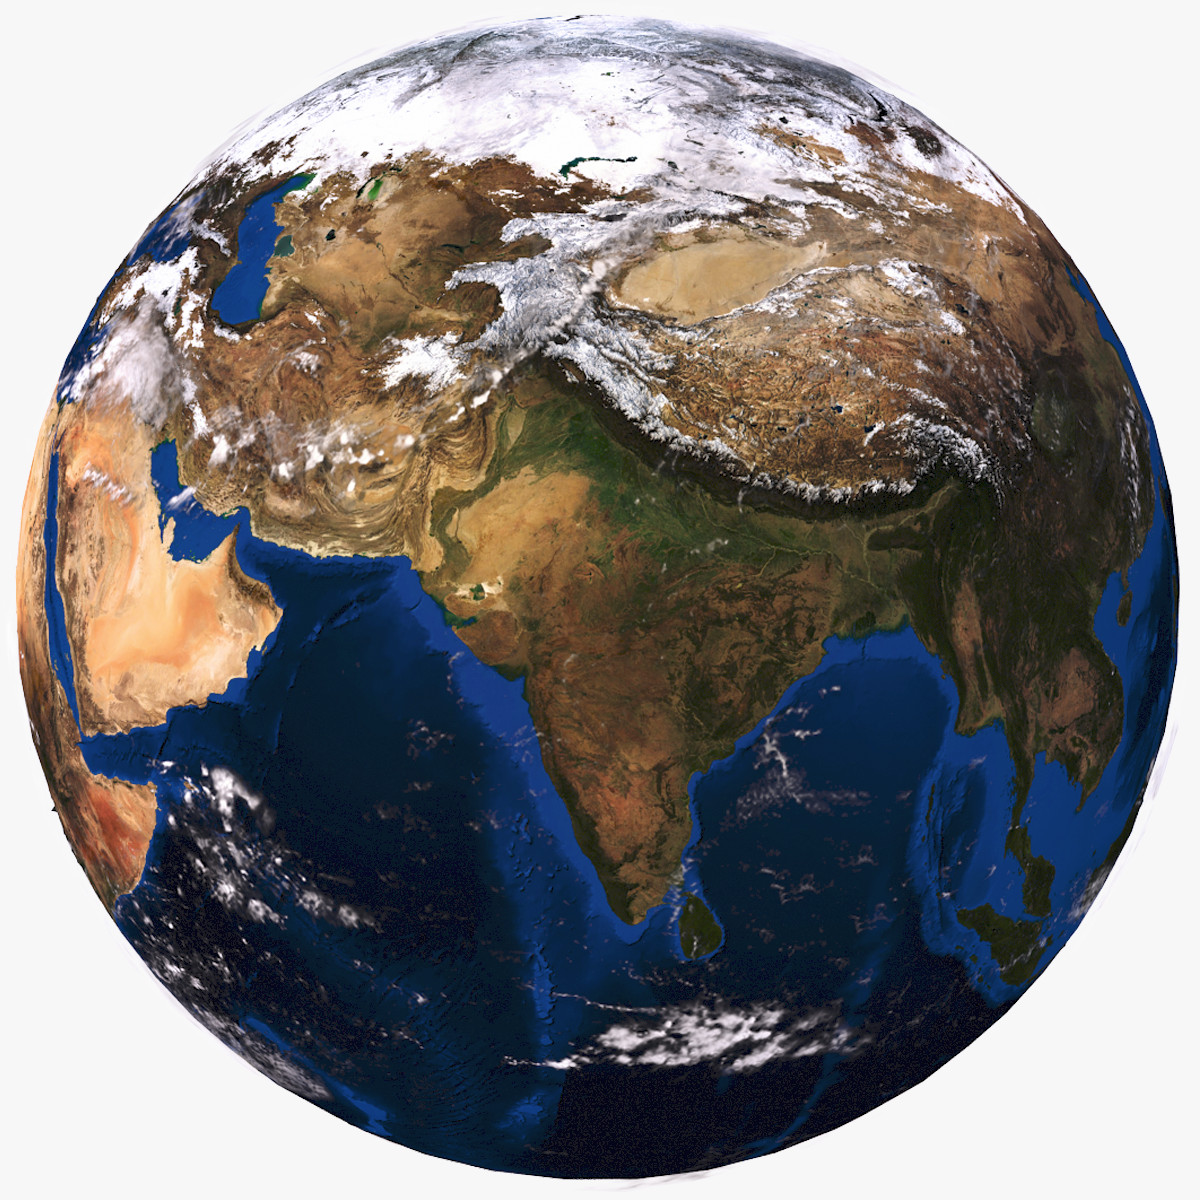 01_Signature_Image_Earth_01.png